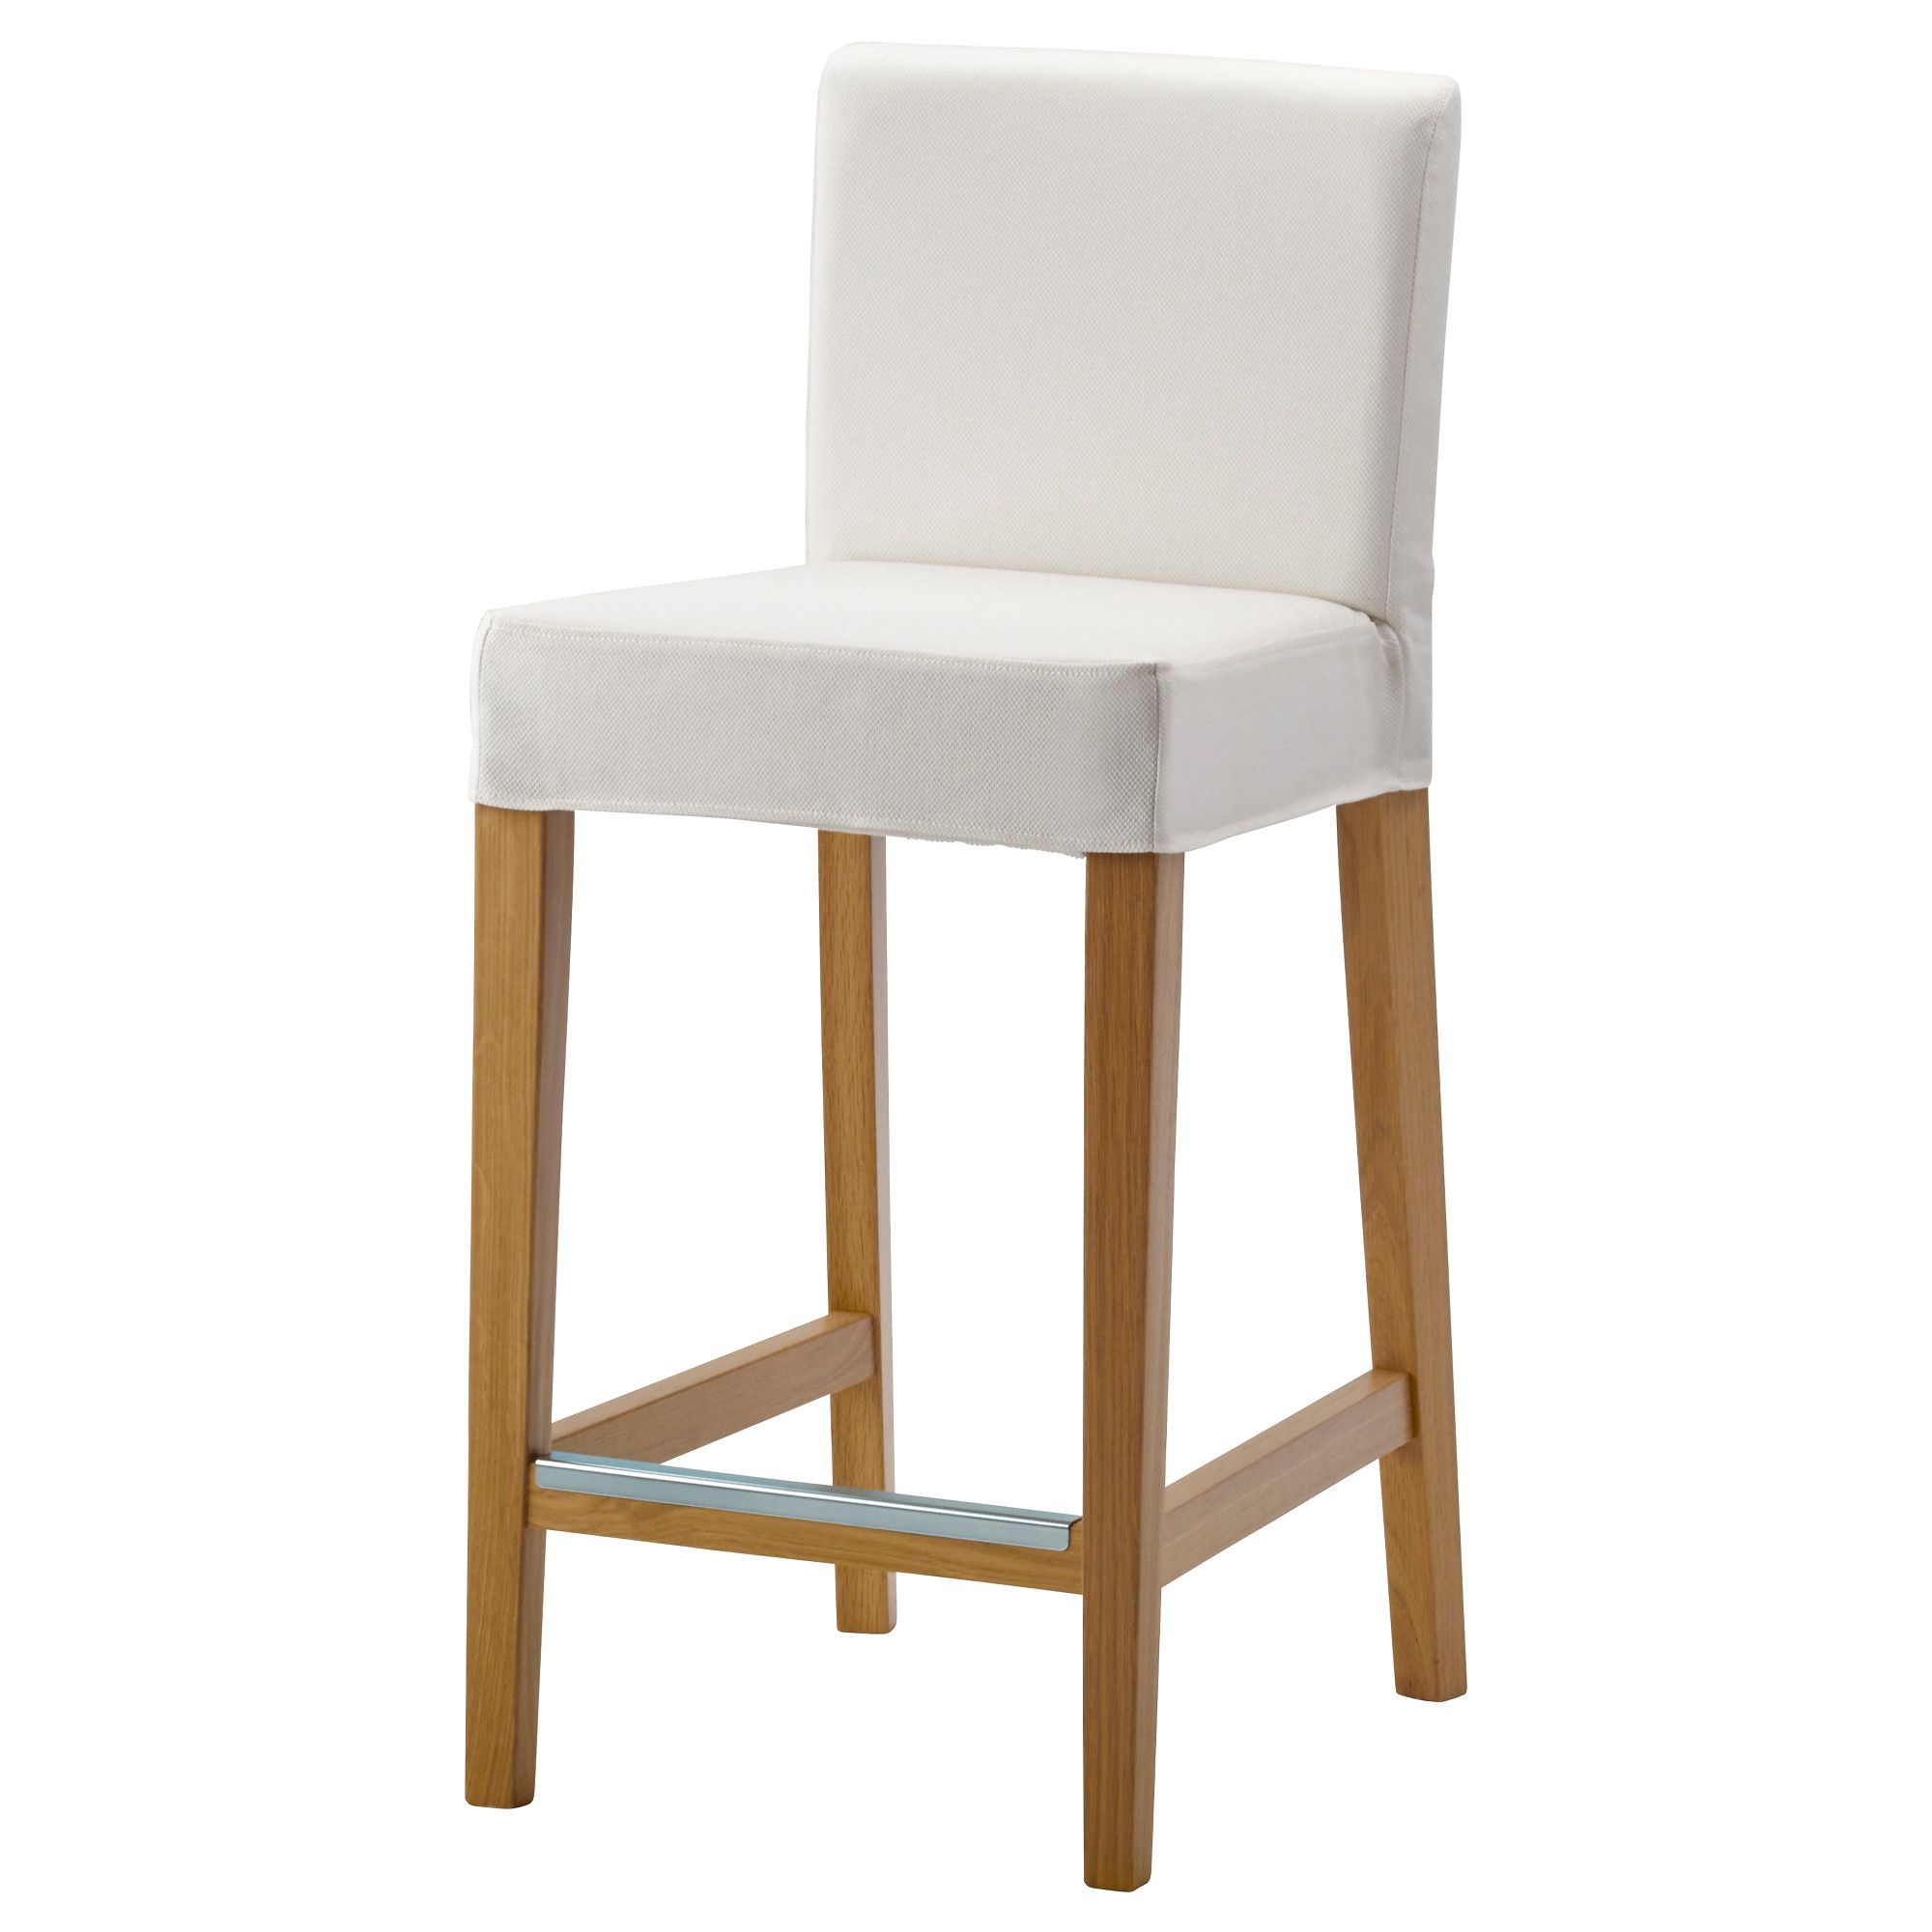 Shop For Furniture Home Accessories More Bar Stools Kitchen